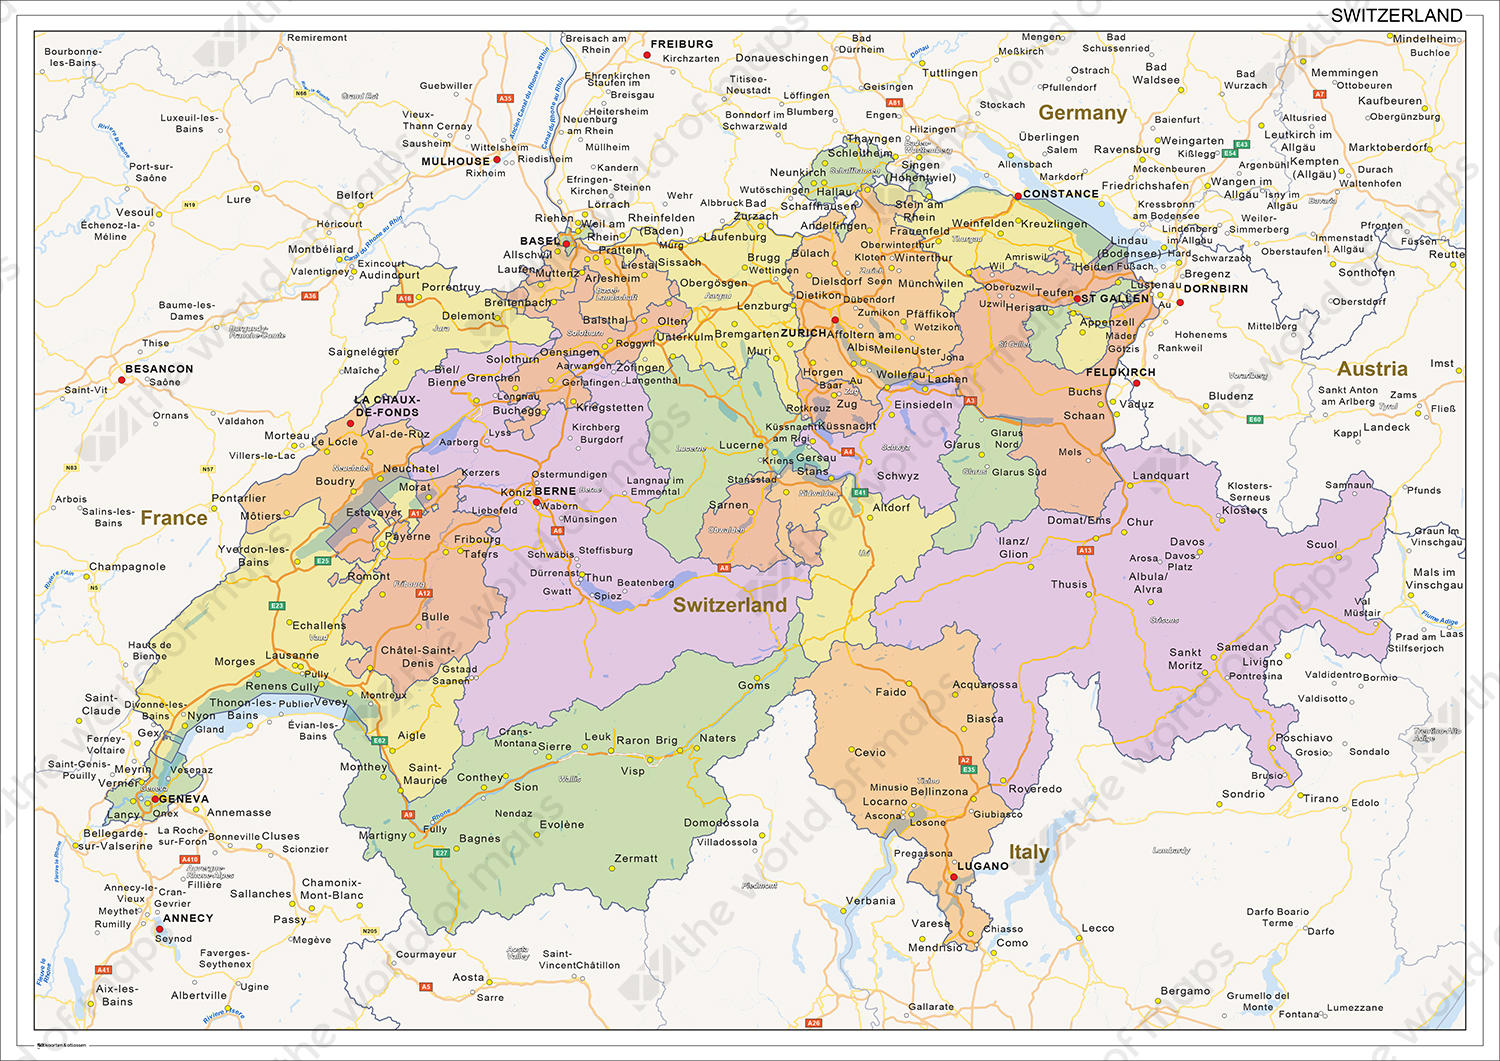 Digital political map of Switzerland 1474 The World of Mapscom